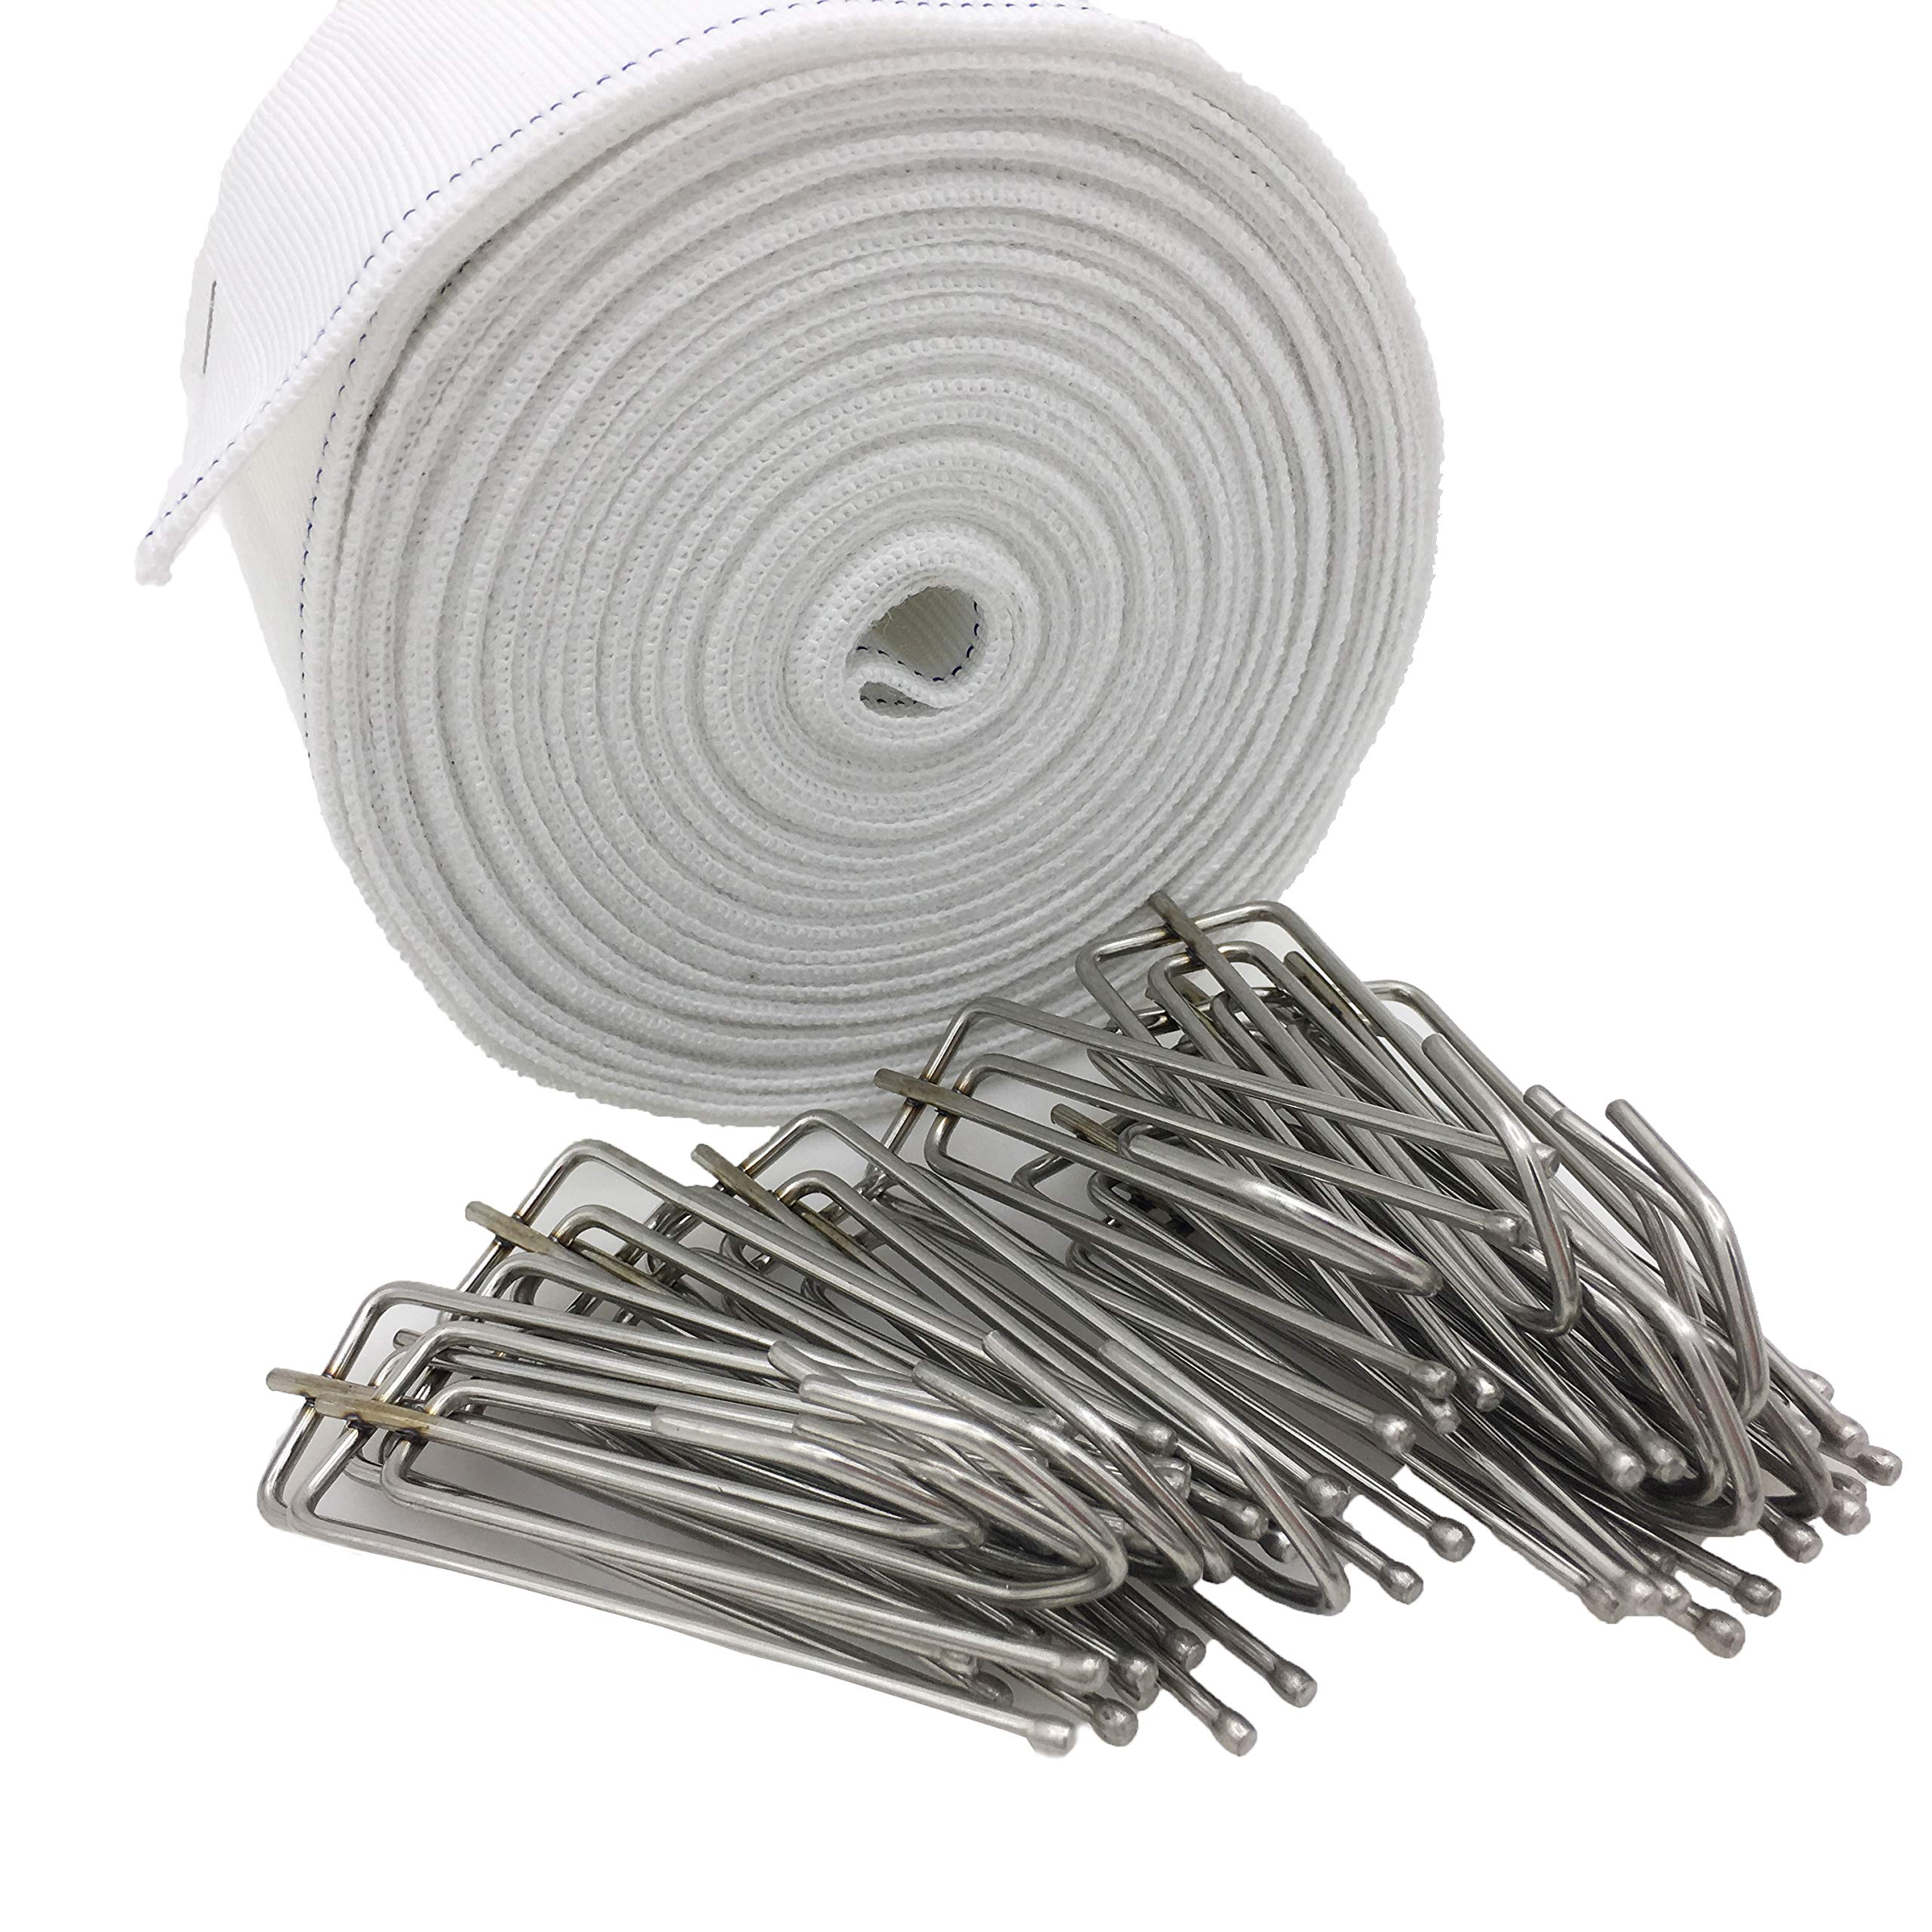 Yoead 10 Meters Curtain Tapes with 15pcs Stainless Steel Curtain Pleater Hooks for DIY Curtain (10 Meters) by Yoead